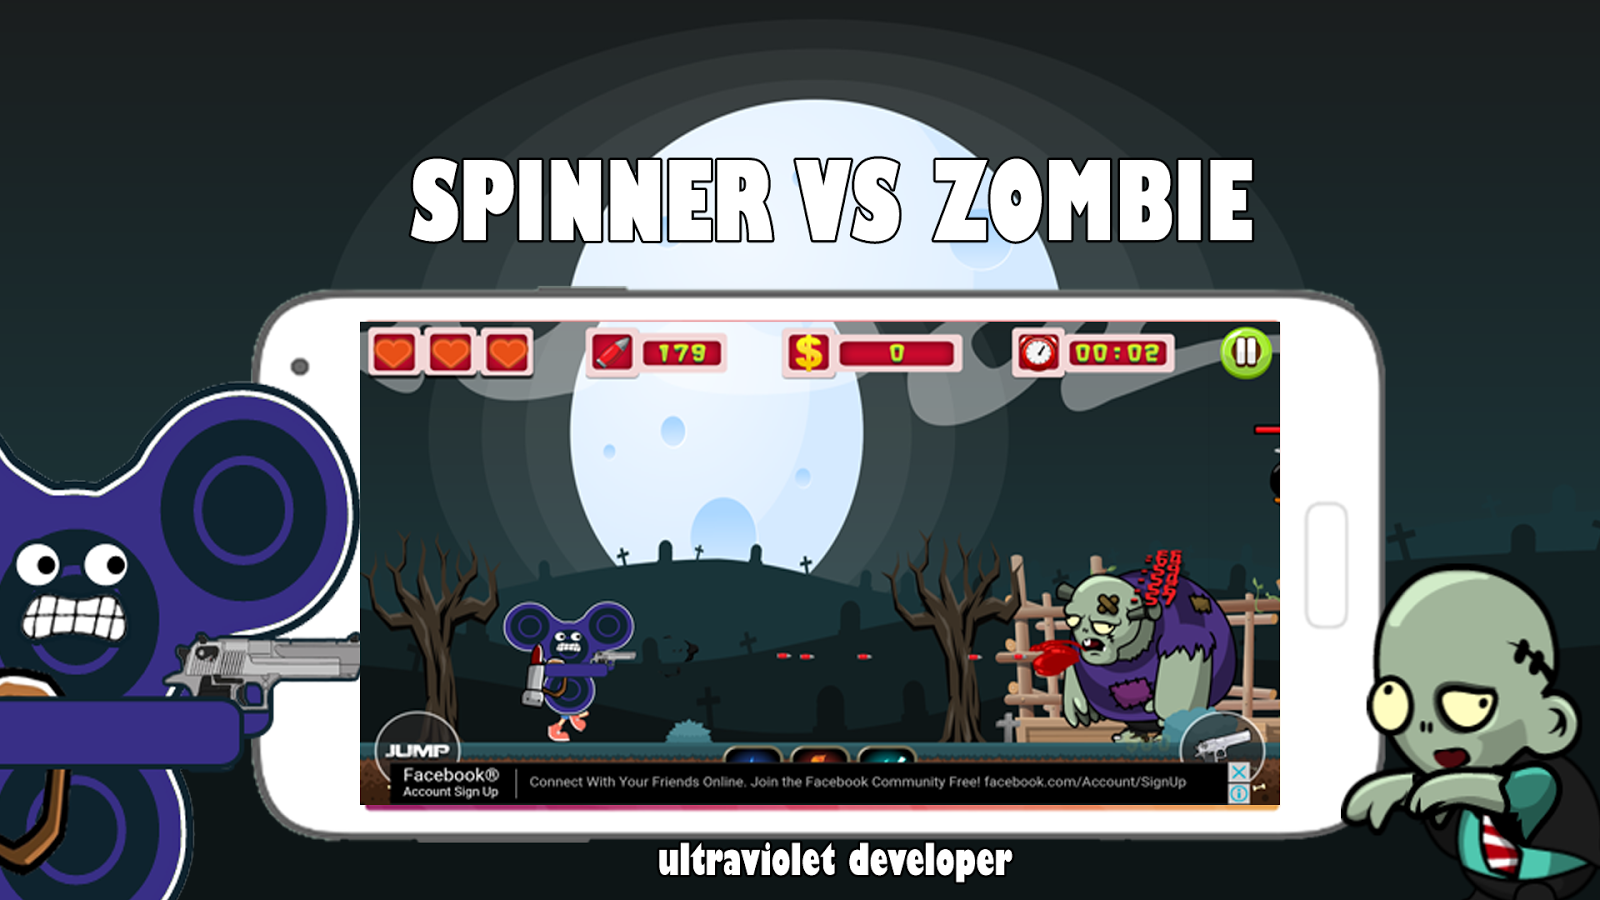 Spinner VS Zombie - Android Apps on Google Play